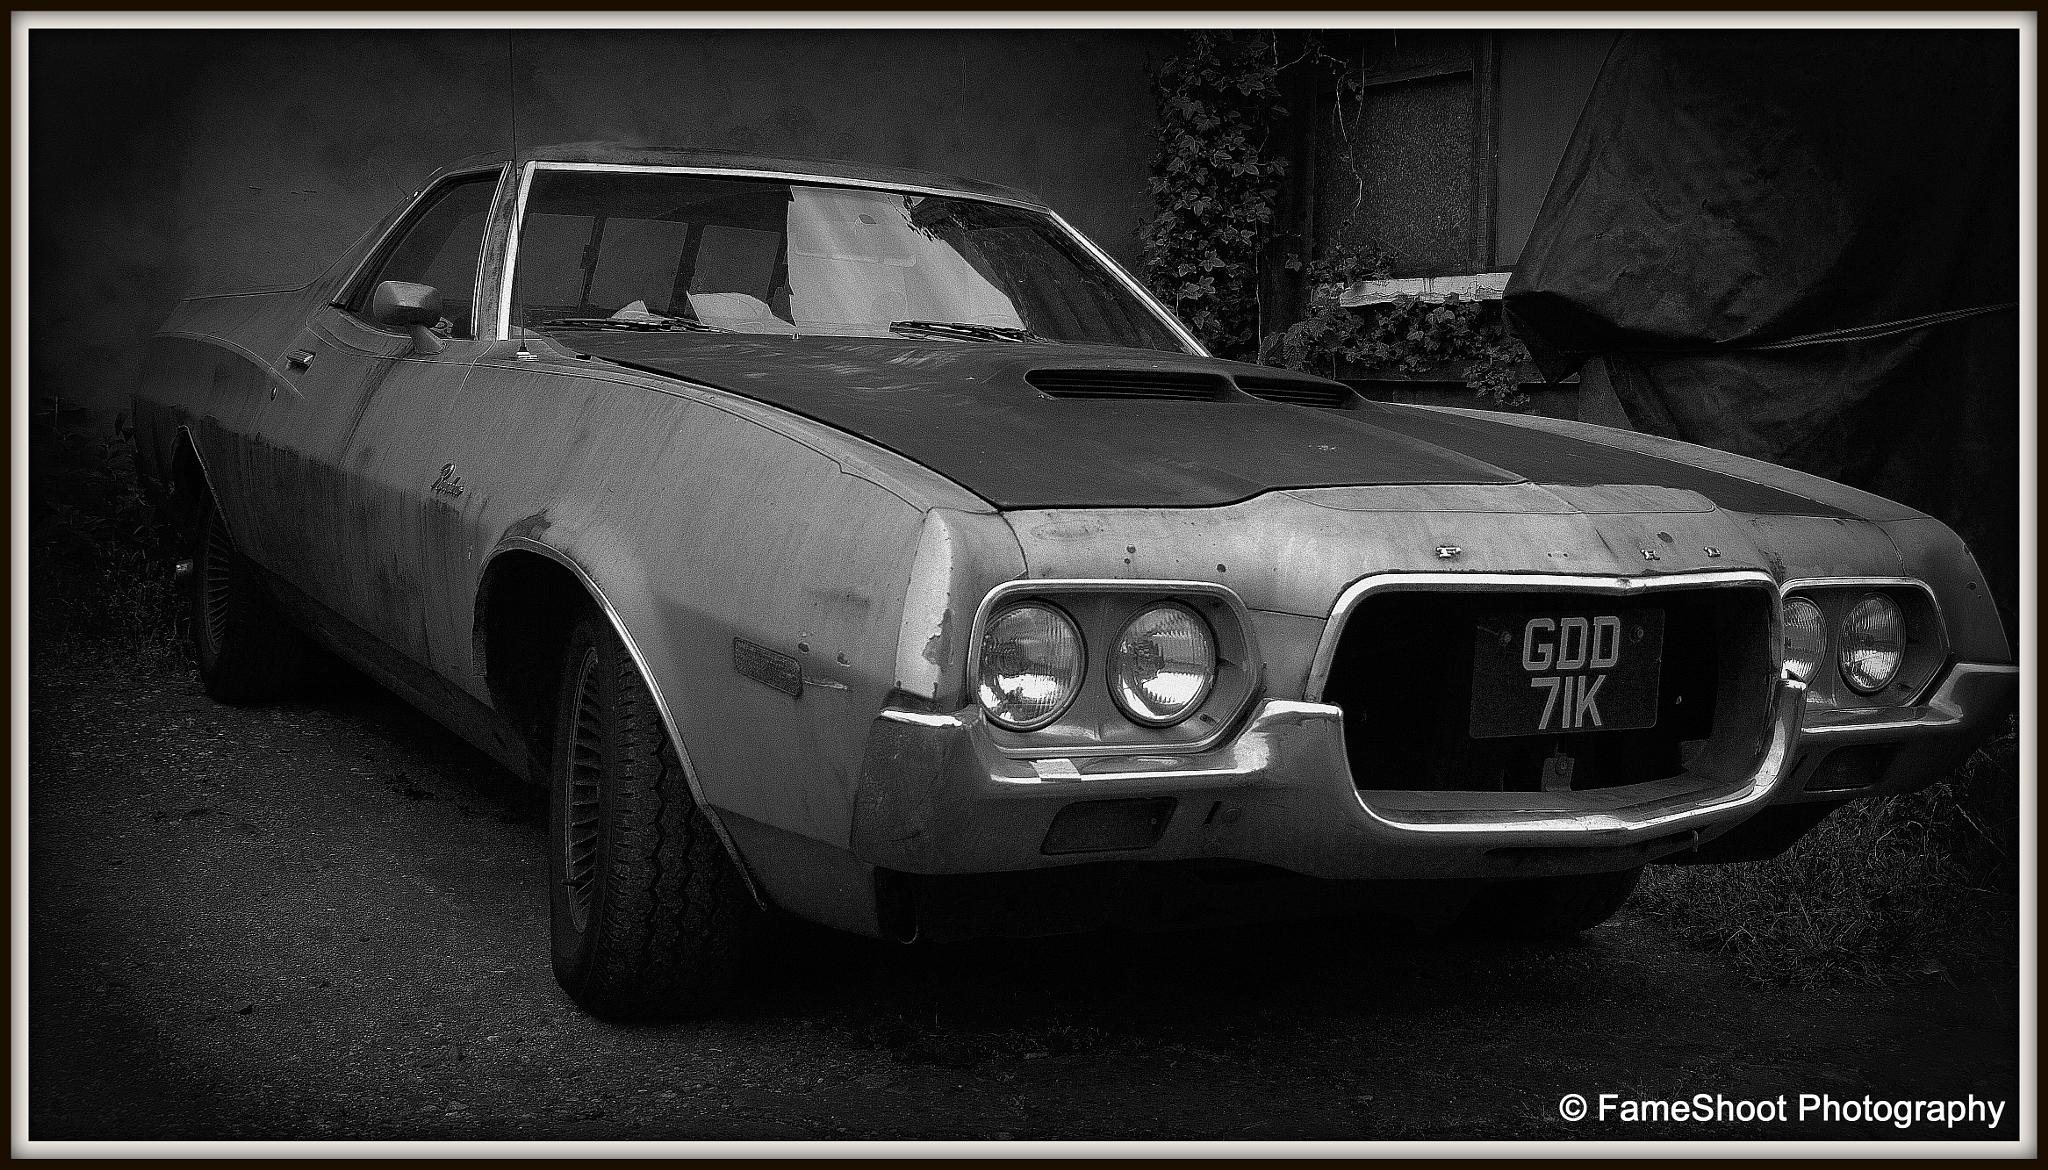 Ford Ranchero. by Fame Shoot Photography